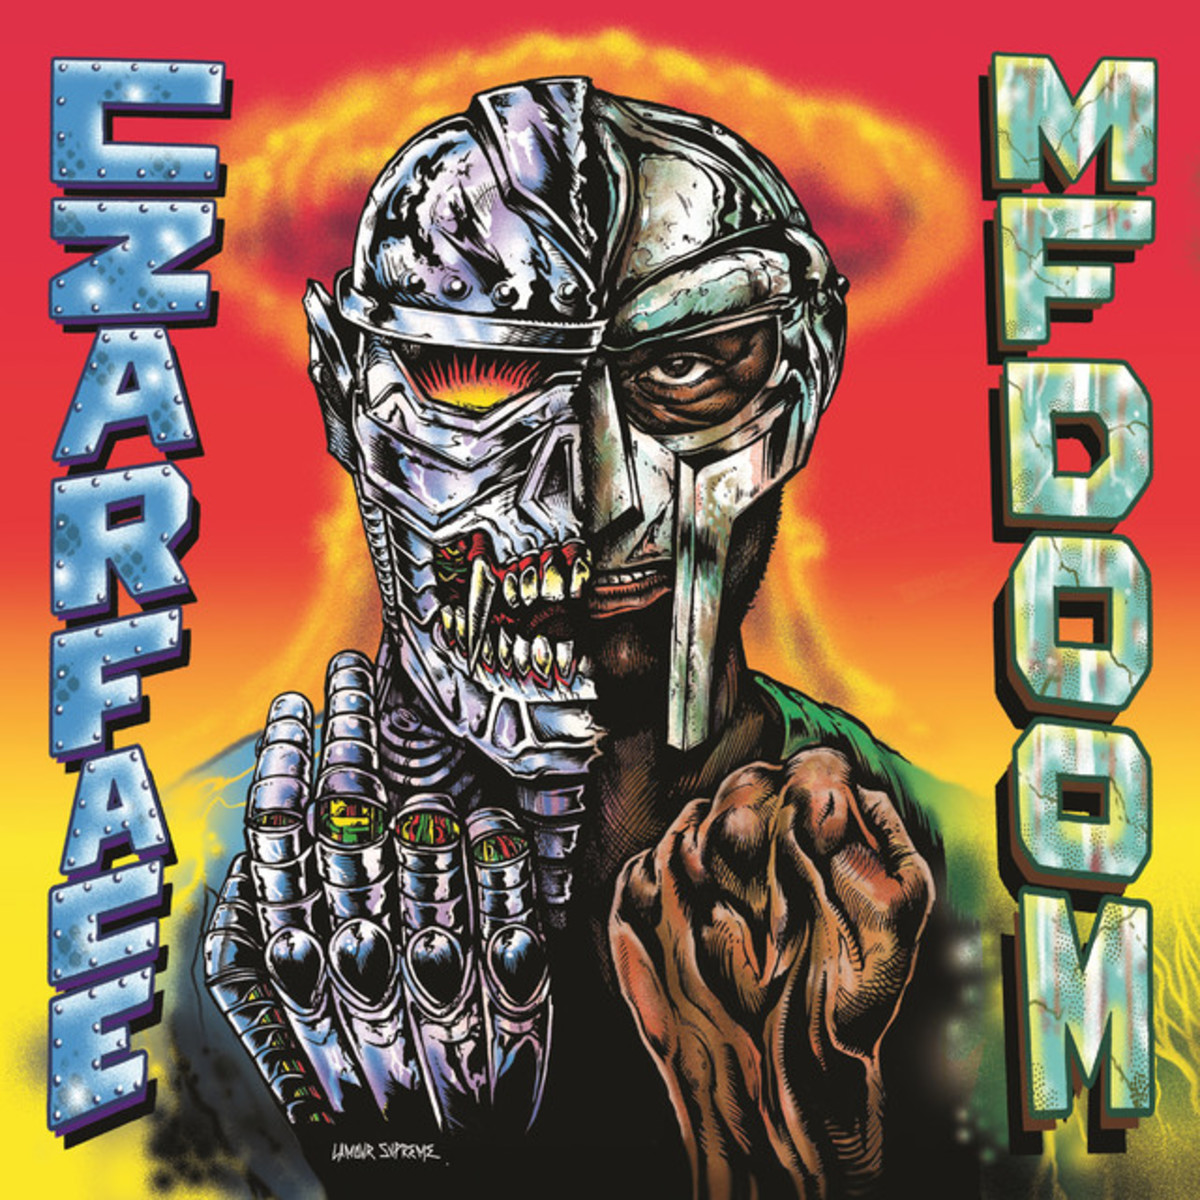 Czarface Meets MF Doom Best Albums of 2018